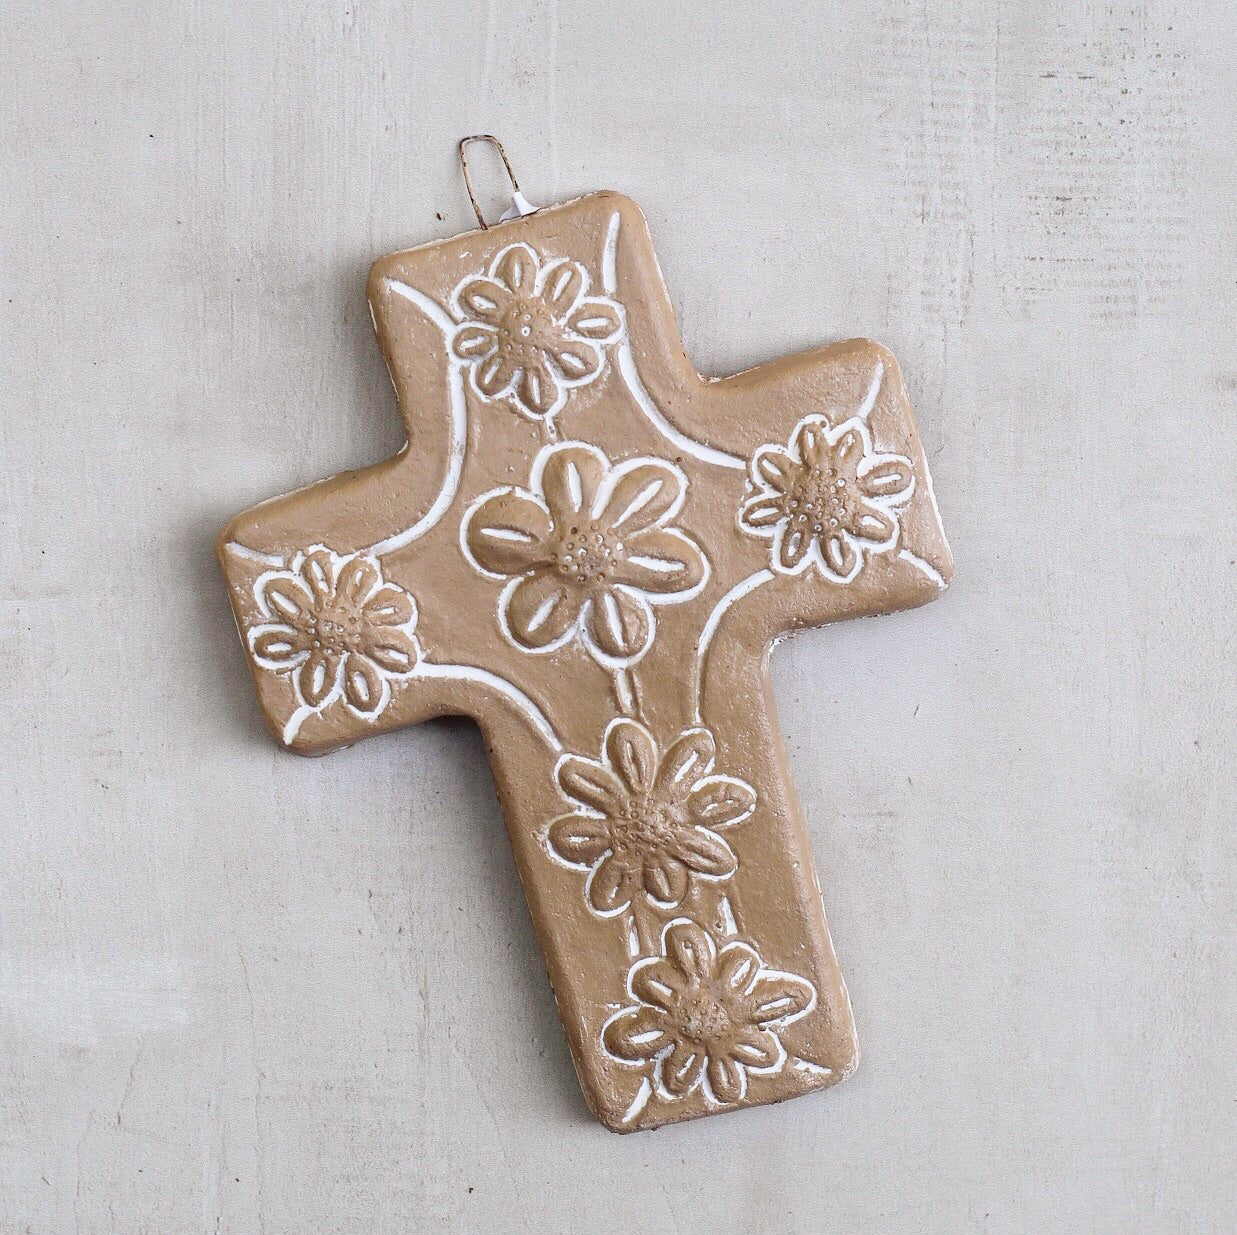 CLAY CROSS W/ 6 FLOWERS